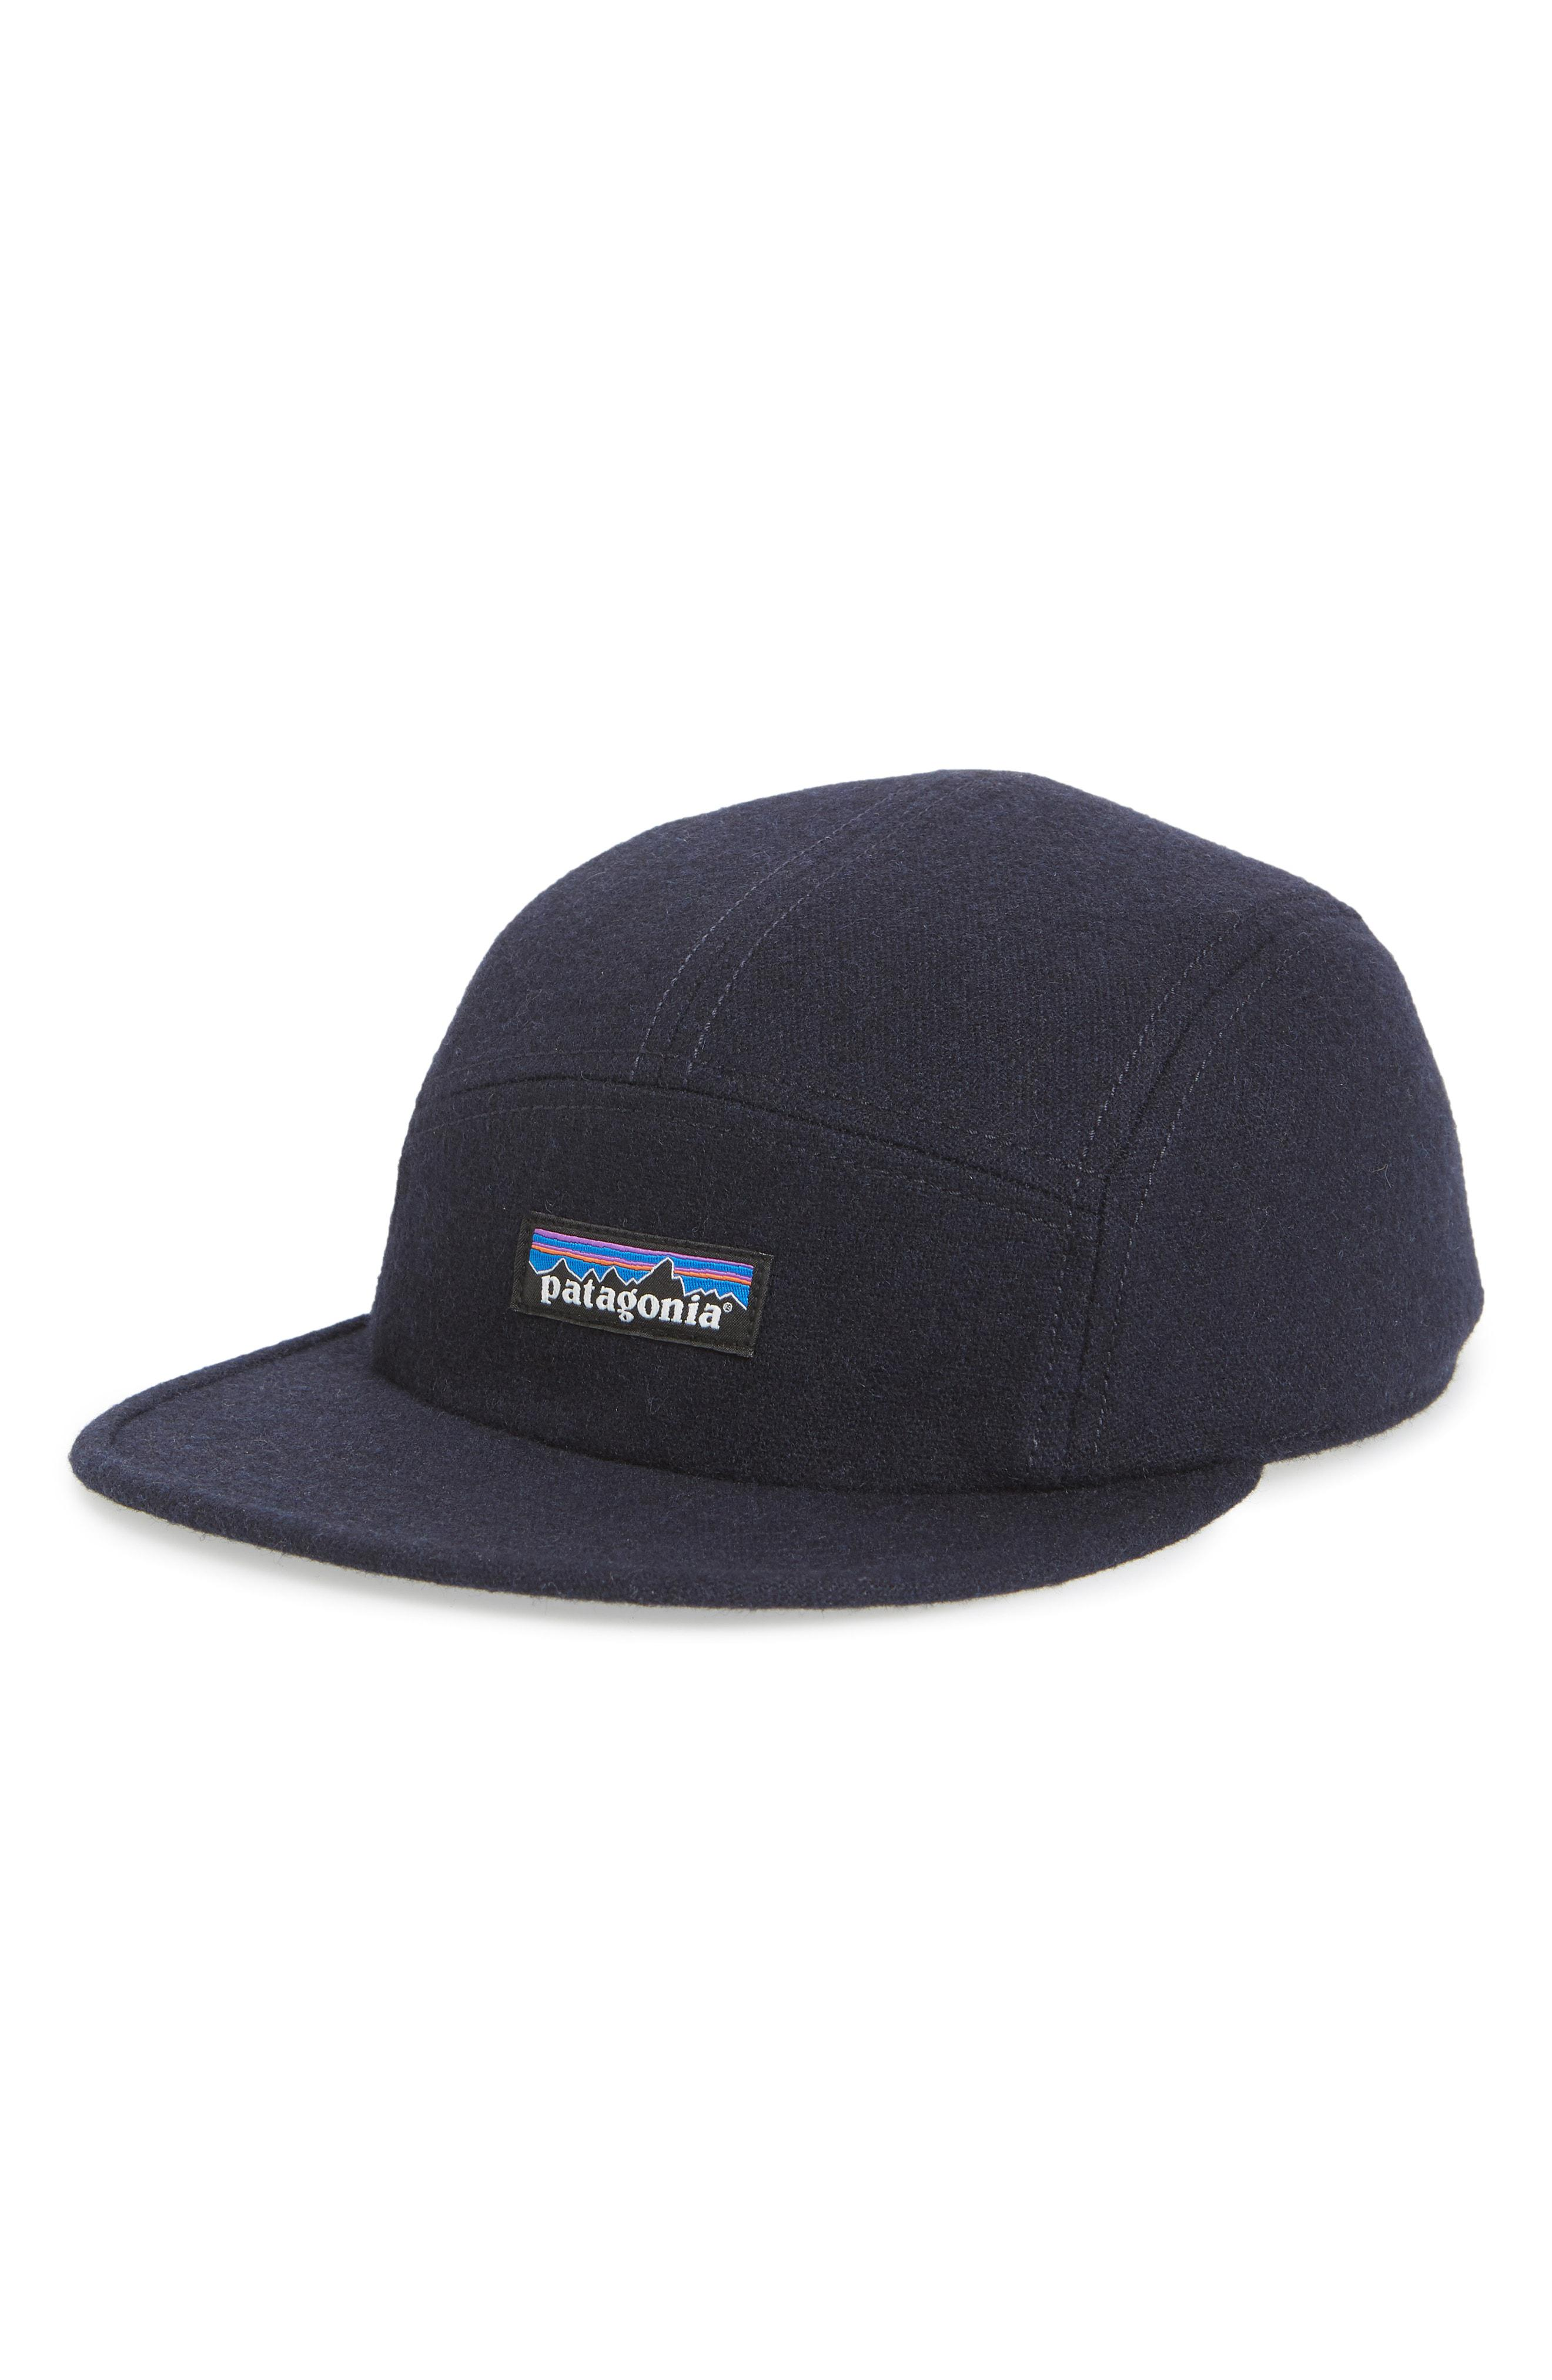 82b3450d Patagonia Recycled Wool Ball Cap in Blue for Men - Lyst